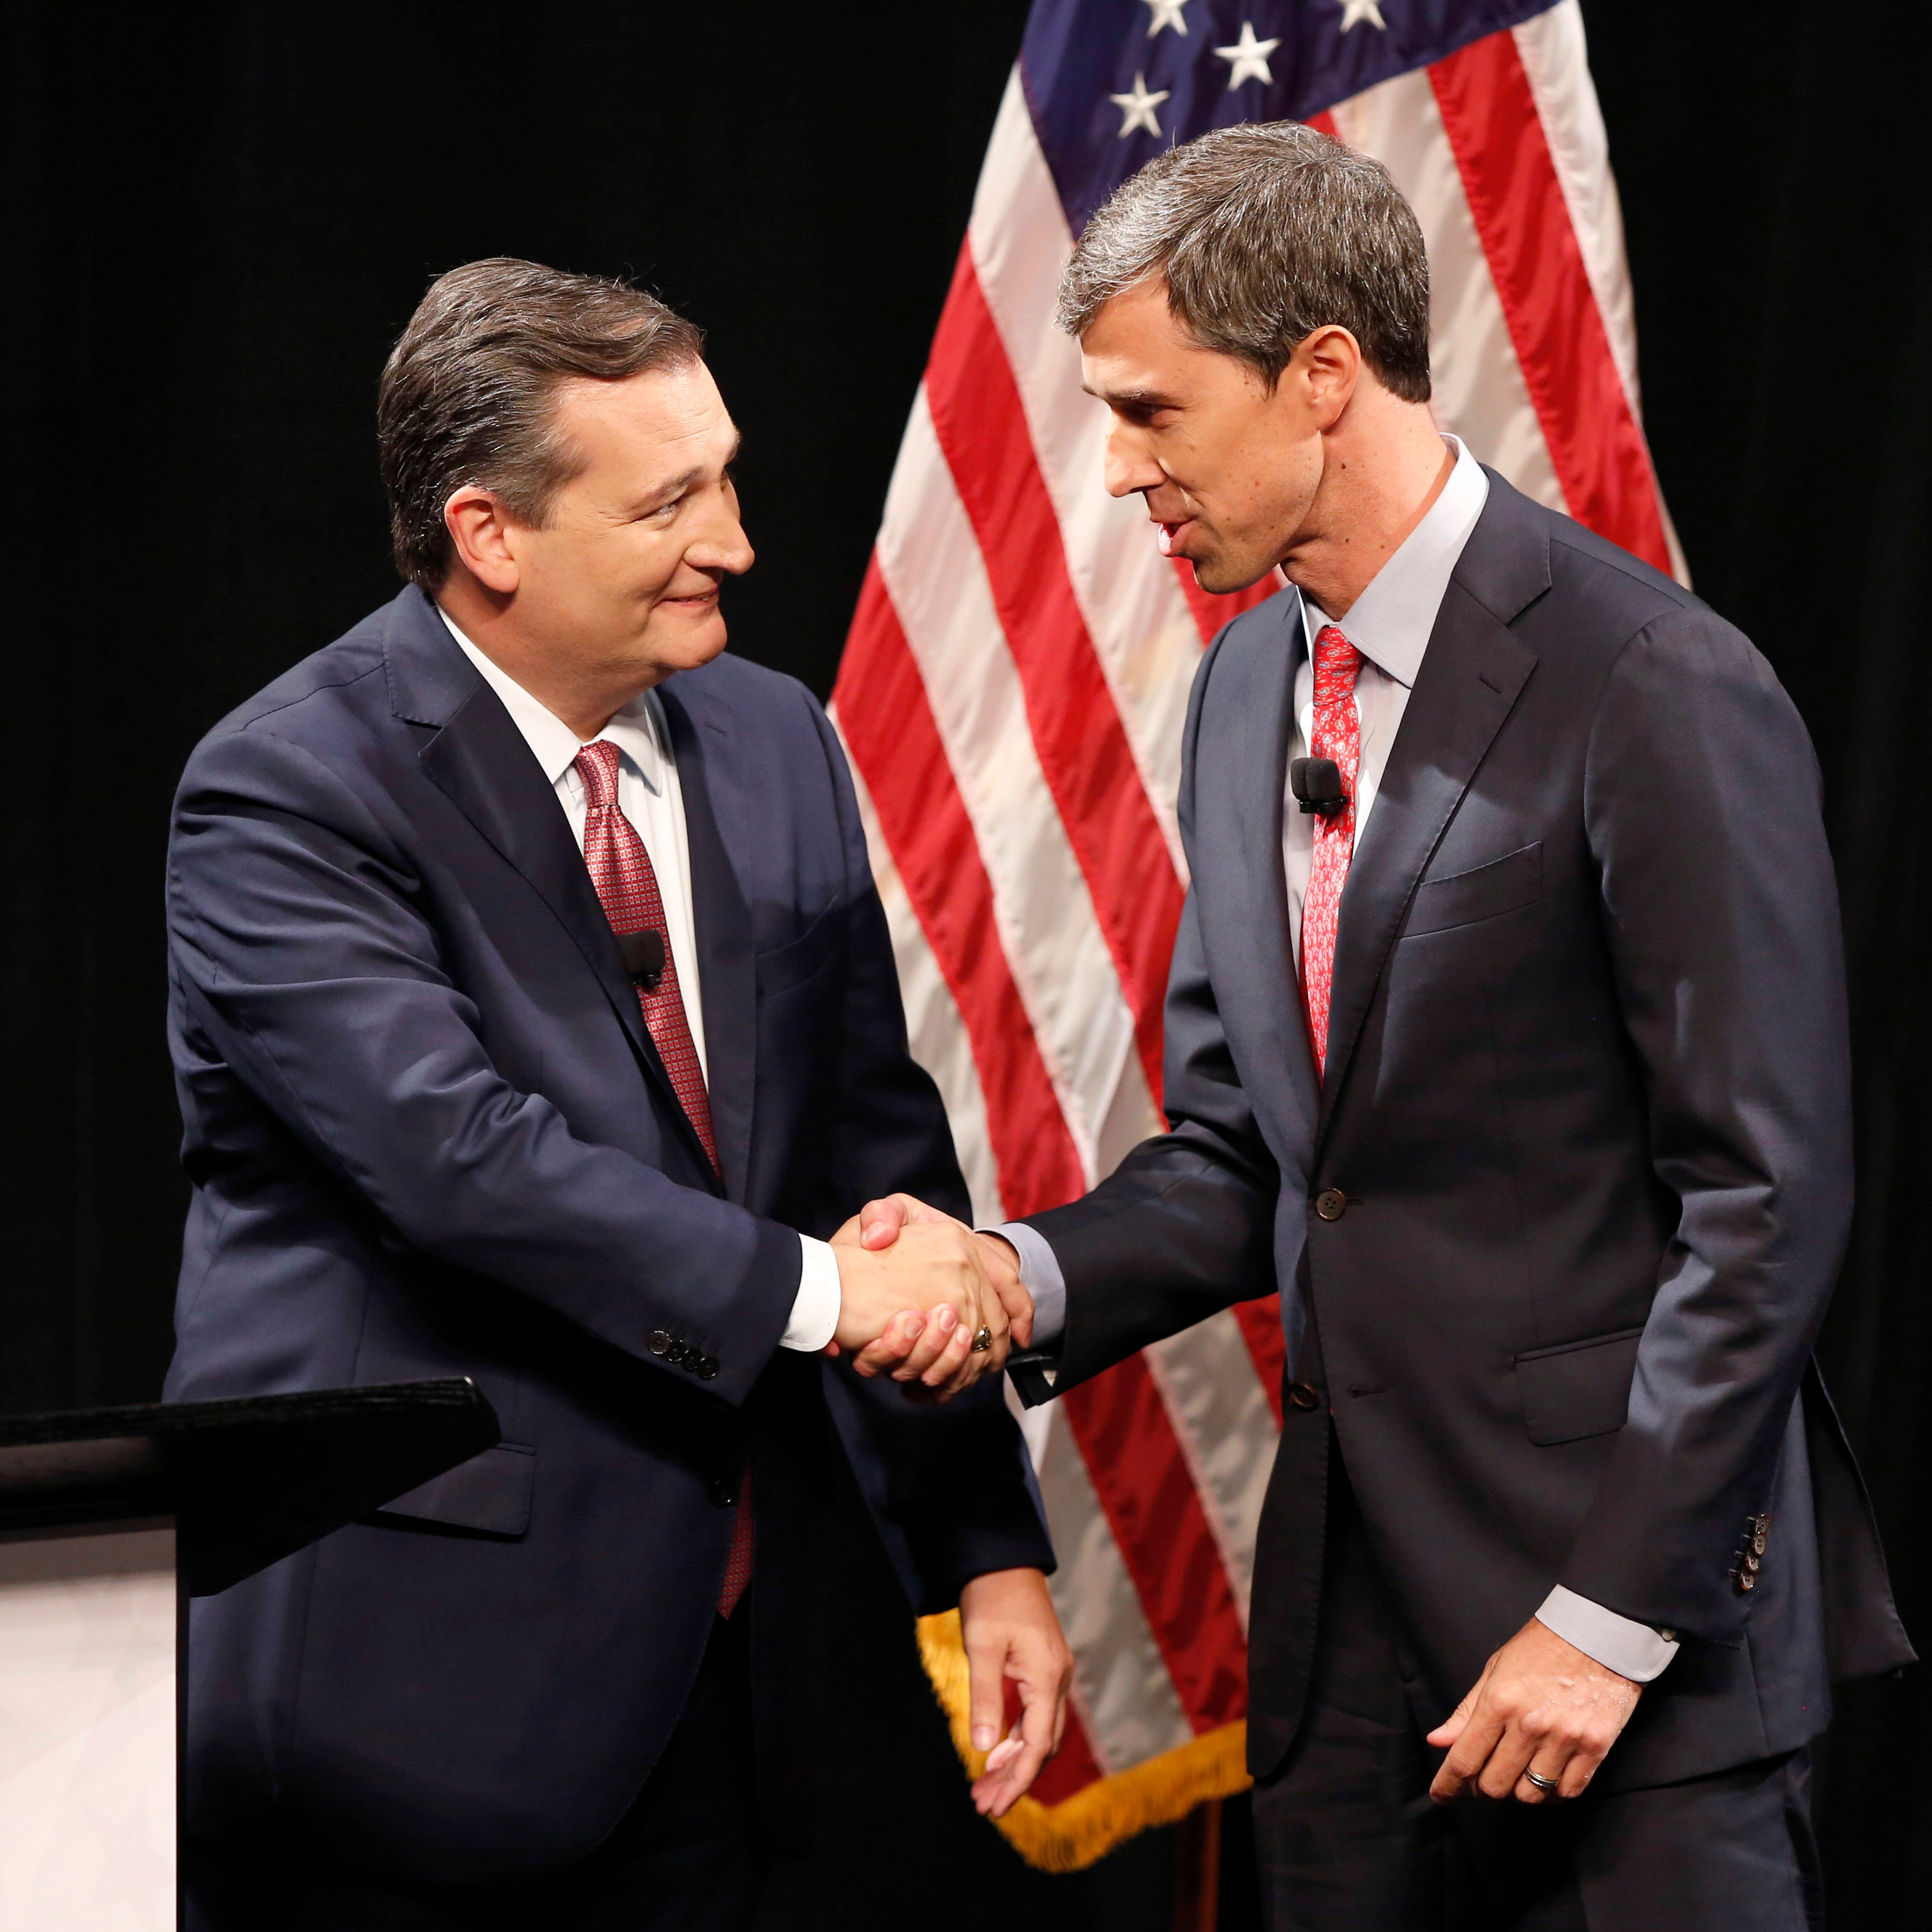 Beto-Cruz Debate: What to watch for during Beto O'Rourke and Ted Cruz's second debate